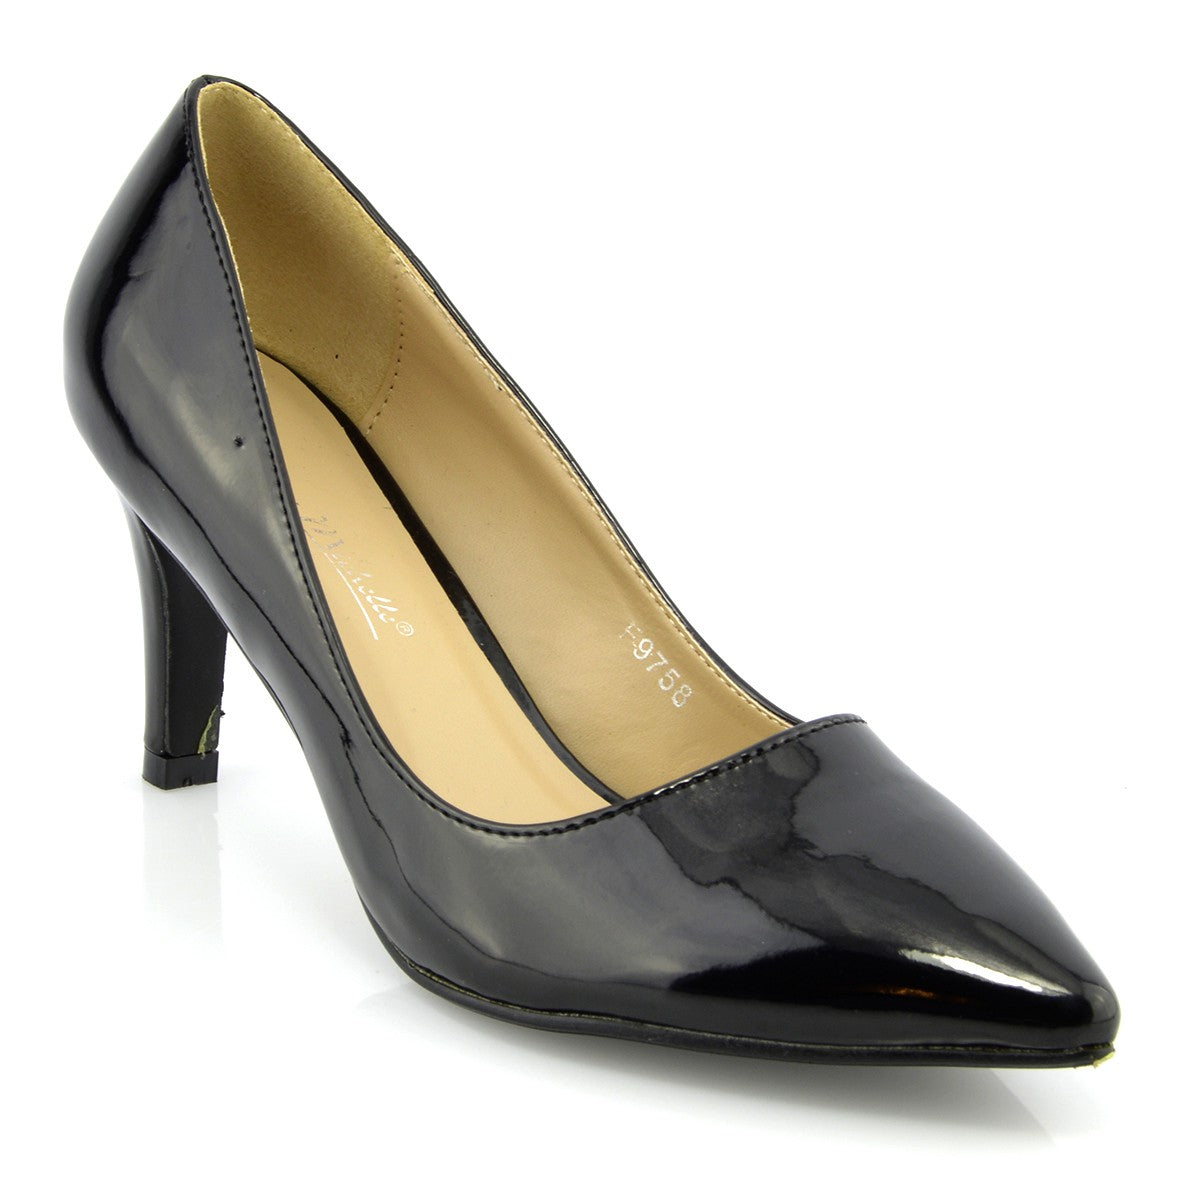 68f63593180a0 Womens court shoes Ladies smart mid high heel work office formal shoes -  Black